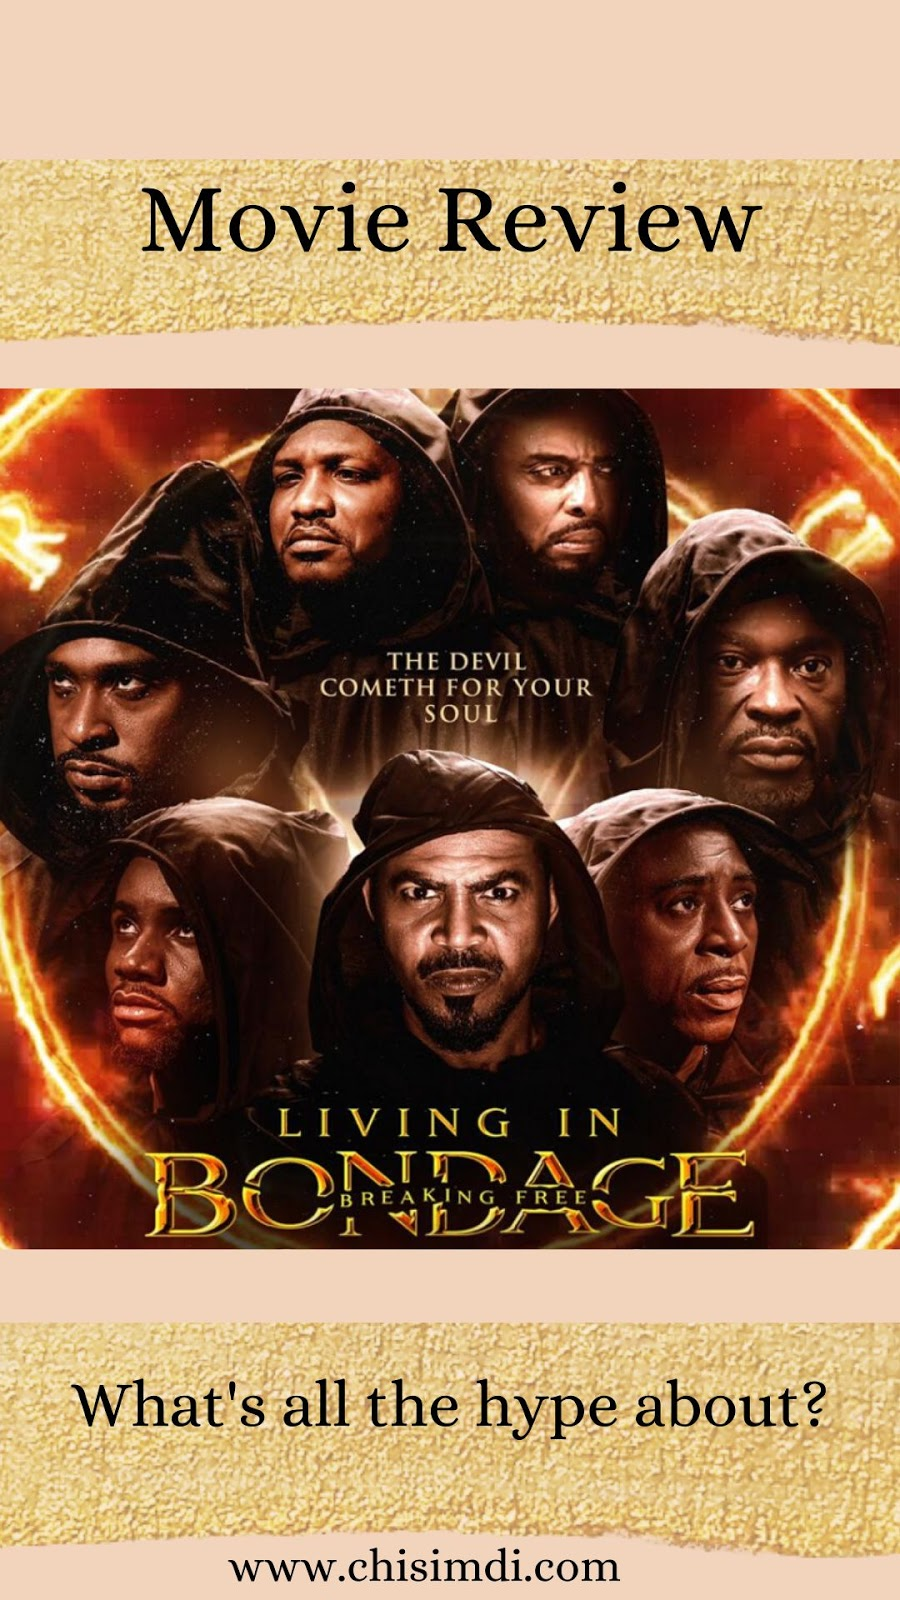 Living in bondage review. Chisimdi's Blog